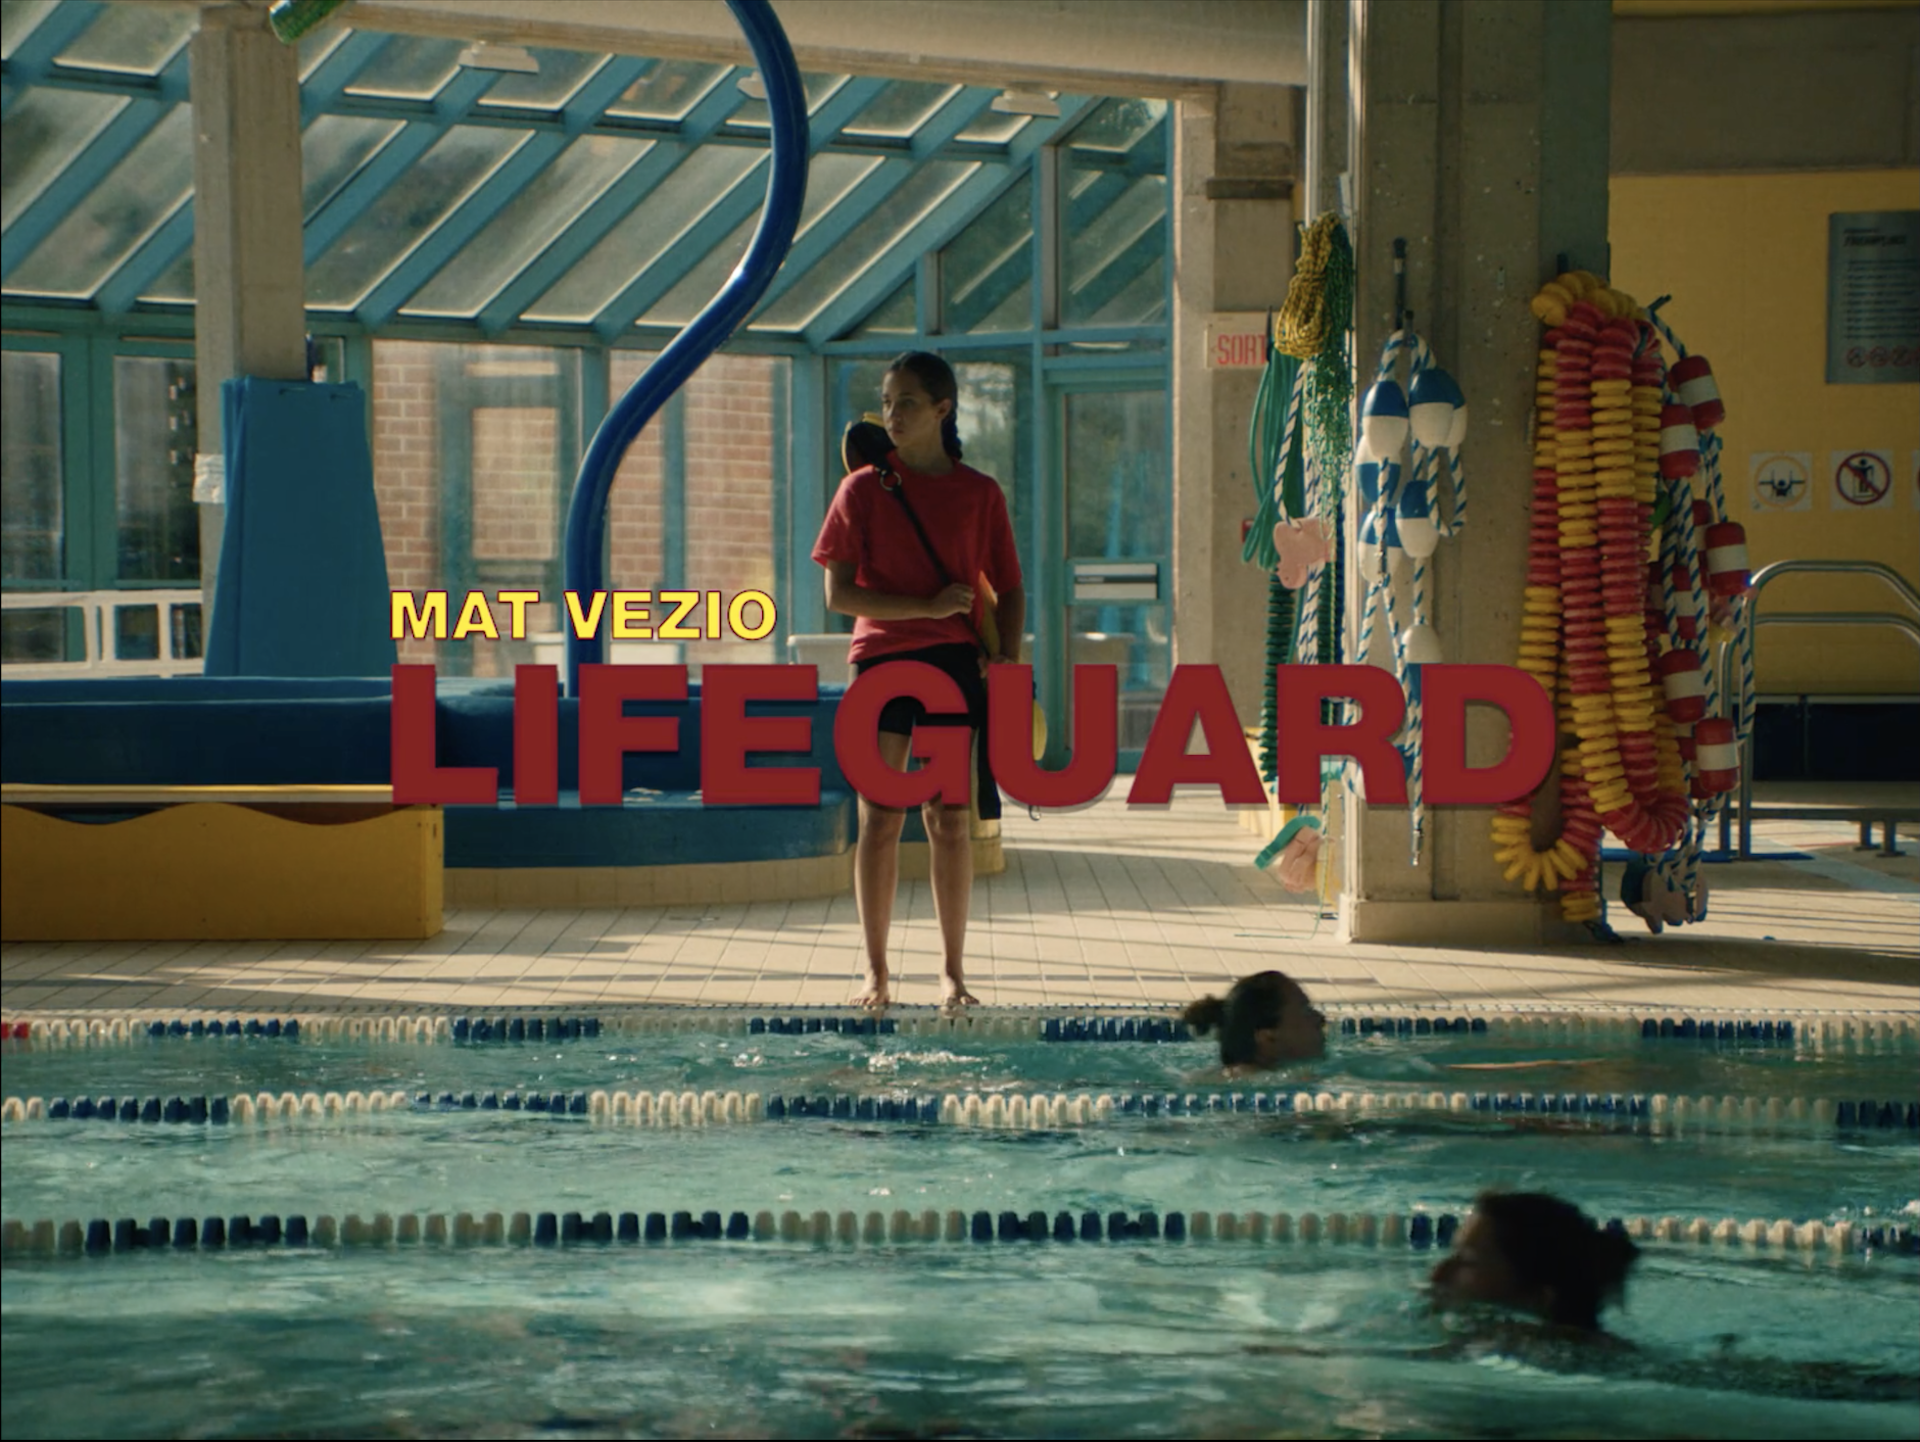 LIFEGUARD - Mat Vezio (music video)